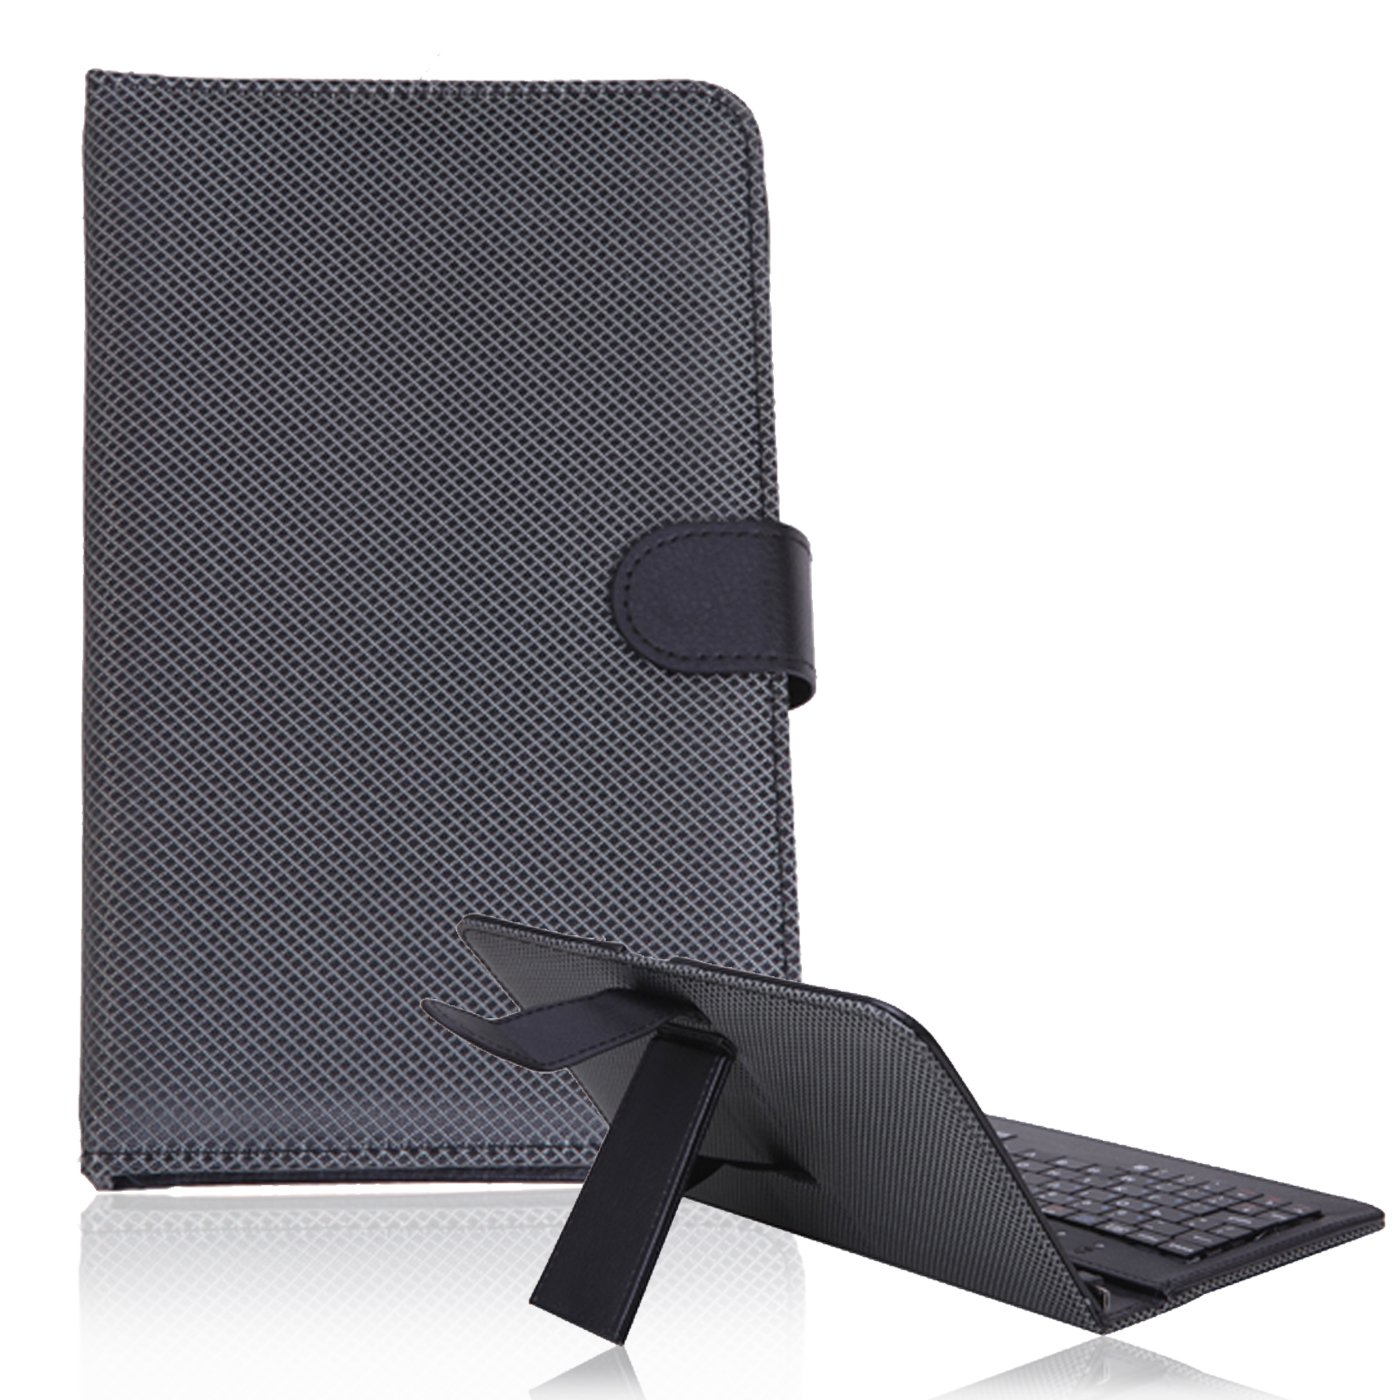 HDE Diamond Stitch Hard Leather Folding Folio Case Cover with Micro USB Keyboard for 7'' Tablet (Black)